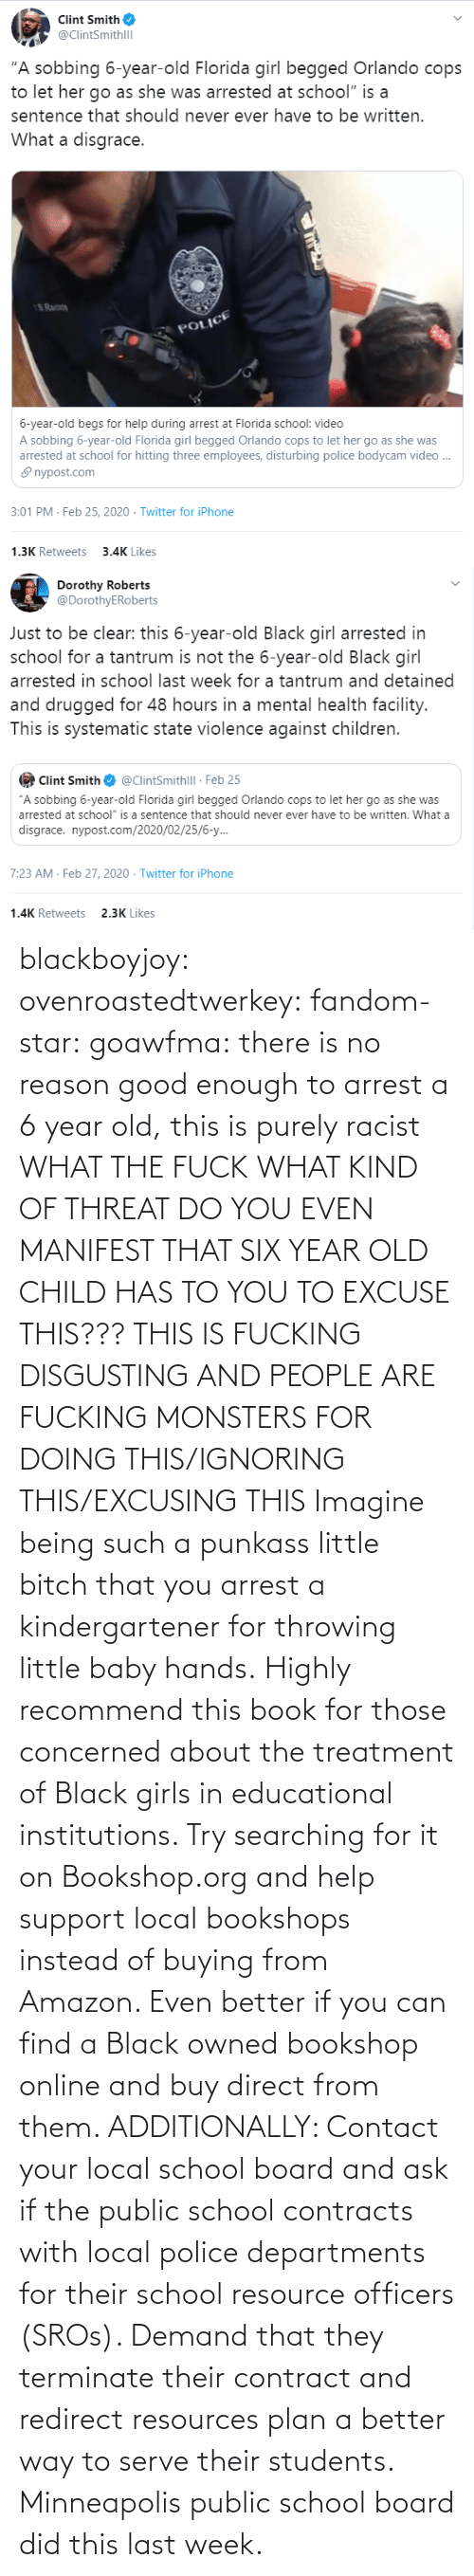 did: blackboyjoy:  ovenroastedtwerkey:  fandom-star:  goawfma: there is no reason good enough to arrest a 6 year old, this is purely racist WHAT THE FUCK WHAT KIND OF THREAT DO YOU EVEN MANIFEST THAT SIX YEAR OLD CHILD HAS TO YOU TO EXCUSE THIS??? THIS IS FUCKING DISGUSTING AND PEOPLE ARE FUCKING MONSTERS FOR DOING THIS/IGNORING THIS/EXCUSING THIS    Imagine being such a punkass little bitch that you arrest a kindergartener for throwing little baby hands.  Highly recommend this book for those concerned about the treatment of Black girls in educational institutions.  Try searching for it on Bookshop.org and help support local bookshops instead of buying from Amazon. Even better if you can find a Black owned bookshop online and buy direct from them.  ADDITIONALLY: Contact your local school board and ask if the public school contracts with local police departments for their school resource officers (SROs). Demand that they terminate their contract and redirect resources plan a better way to serve their students. Minneapolis public school board did this last week.